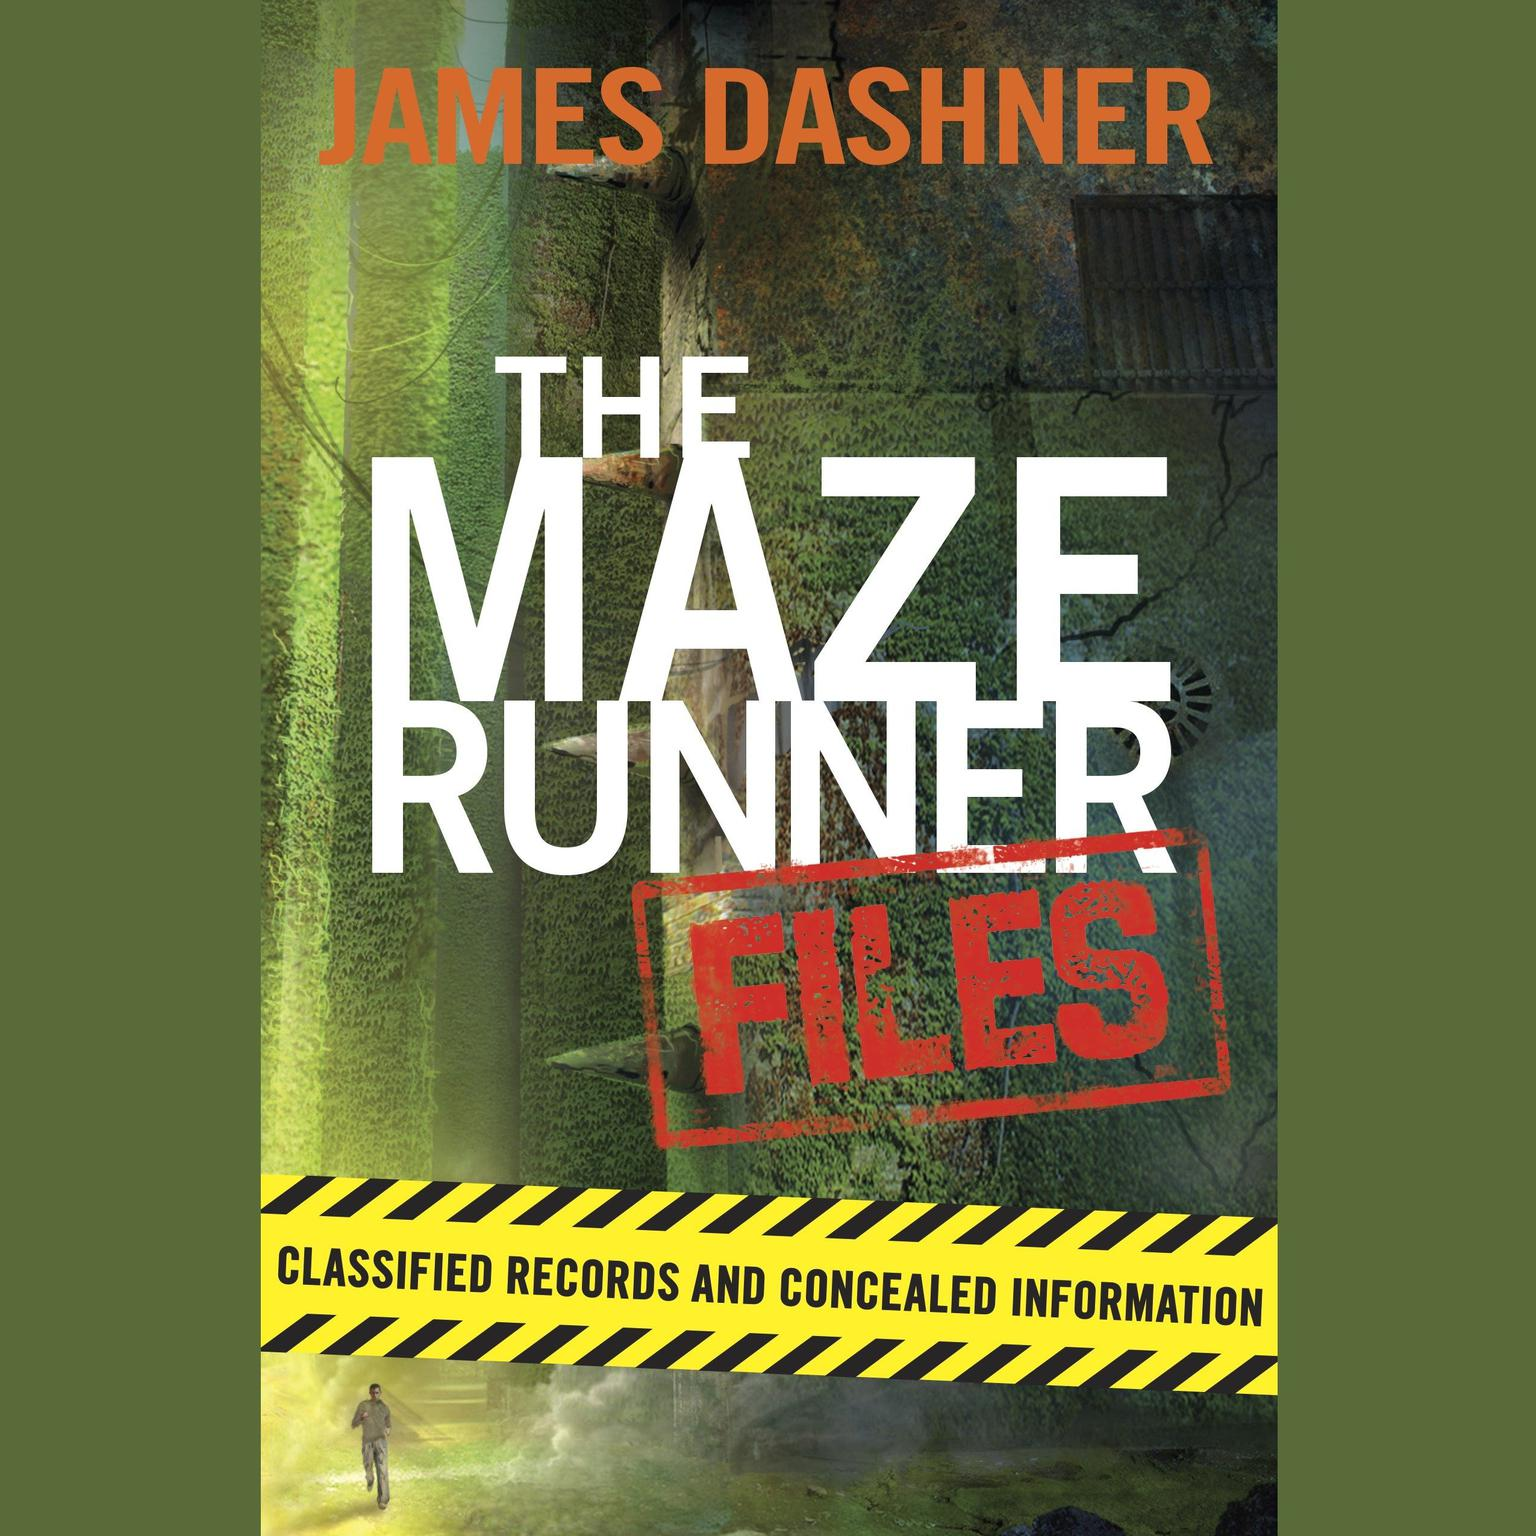 Printable The Maze Runner Files: Classified Records and Concealed Information Audiobook Cover Art